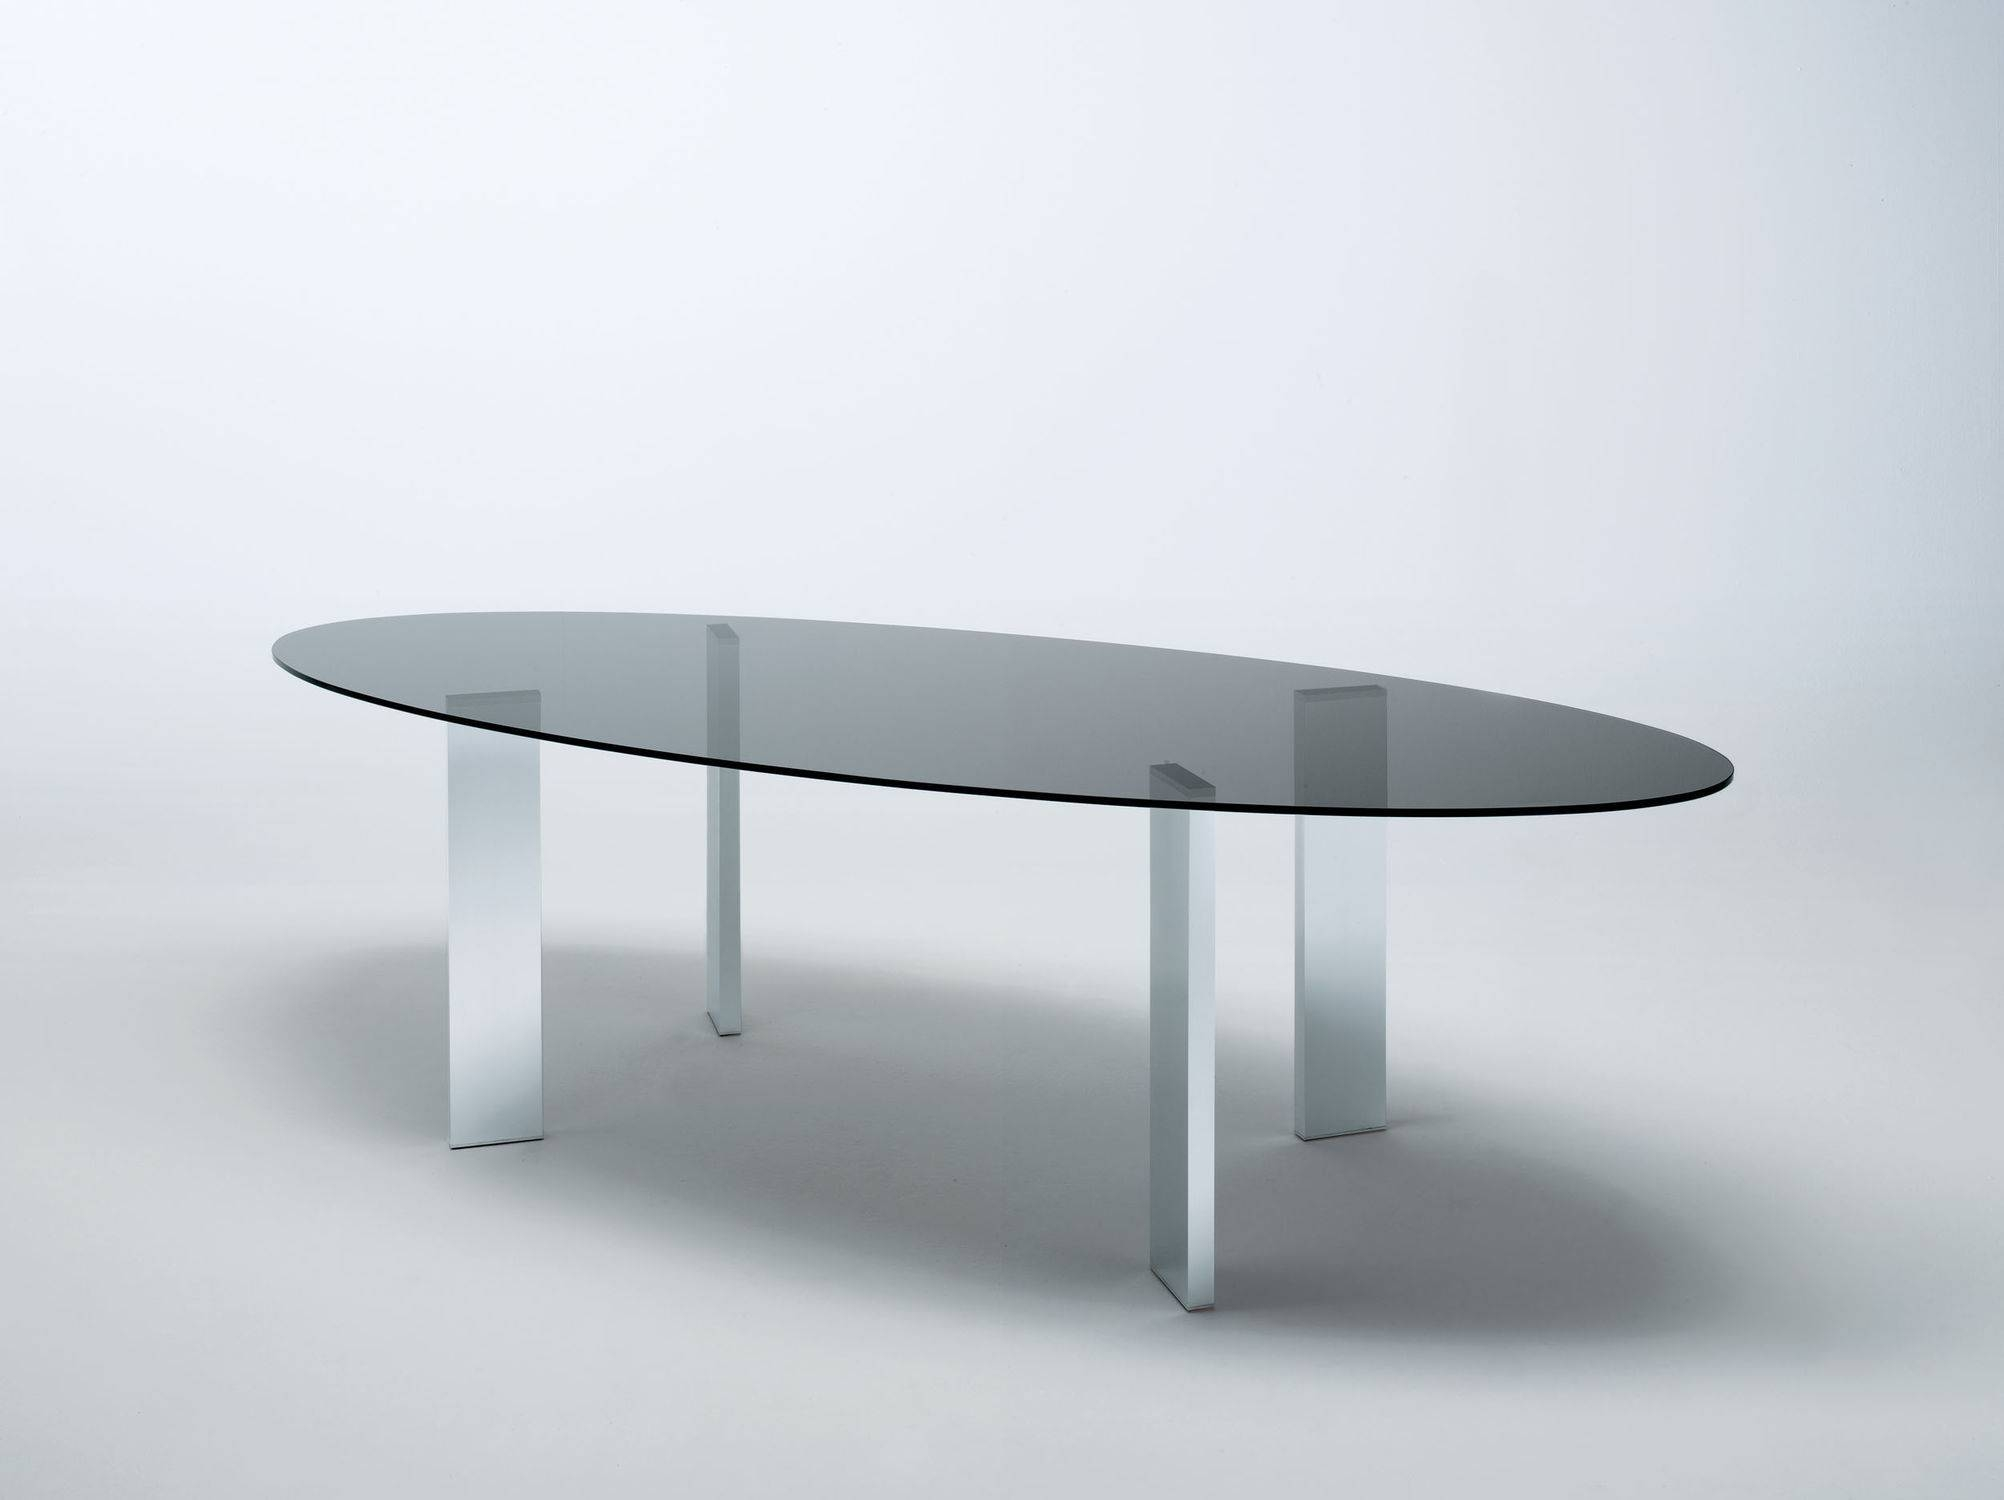 Contemporary Table / Walnut / Glass / Tempered Glass - Taul within Oval Walnut Coffee Tables (Image 10 of 30)